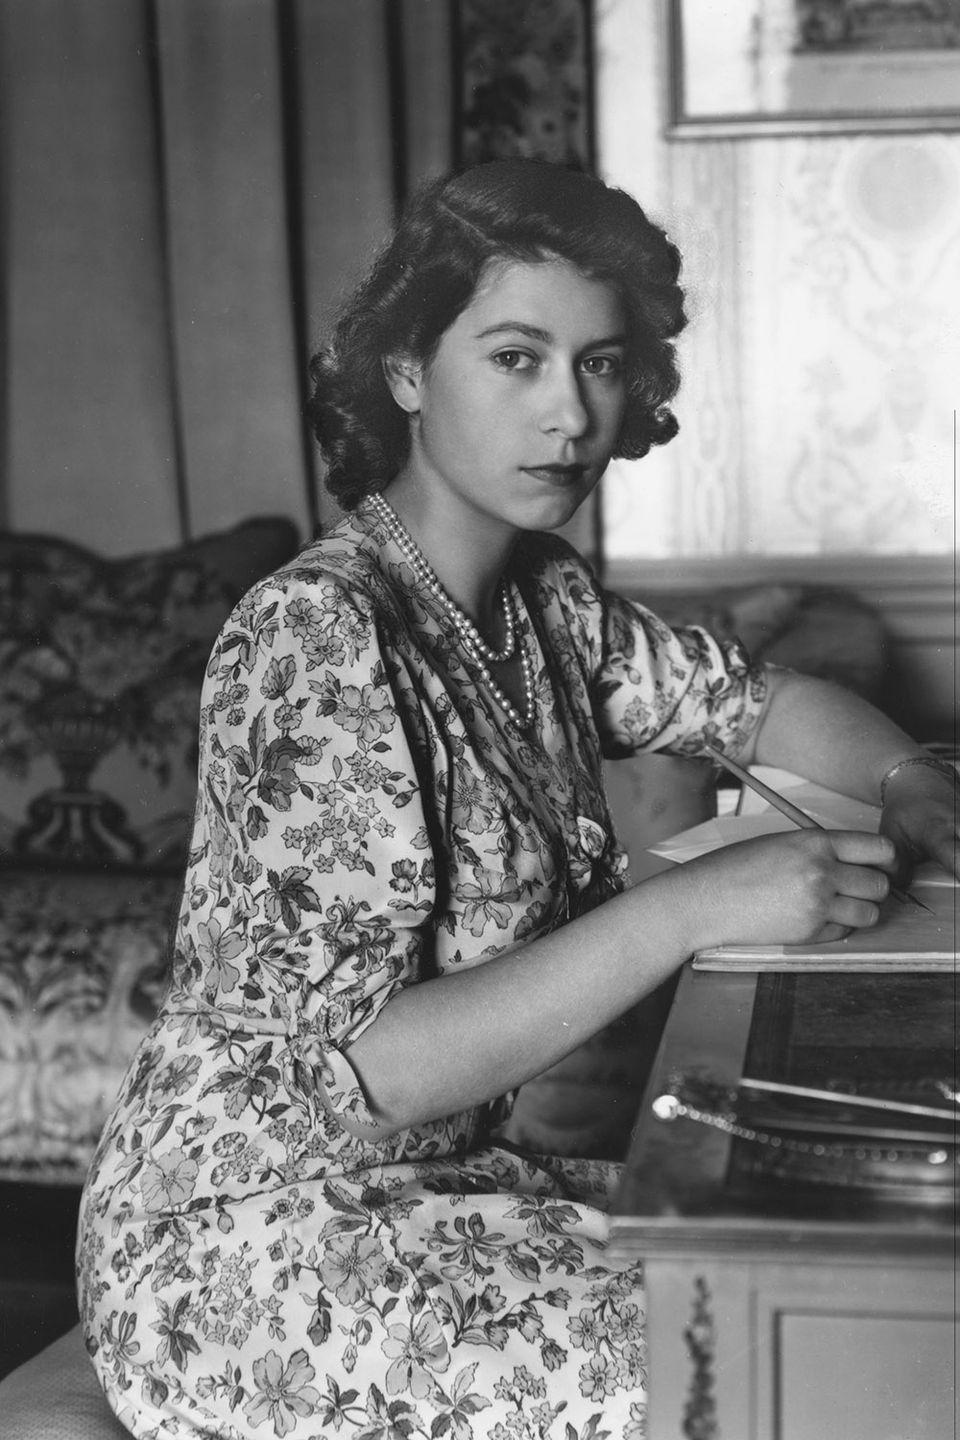 <p>The princess wore a floral-printed dress and pearls as she wrote a note at her desk in Windsor Castle. </p>